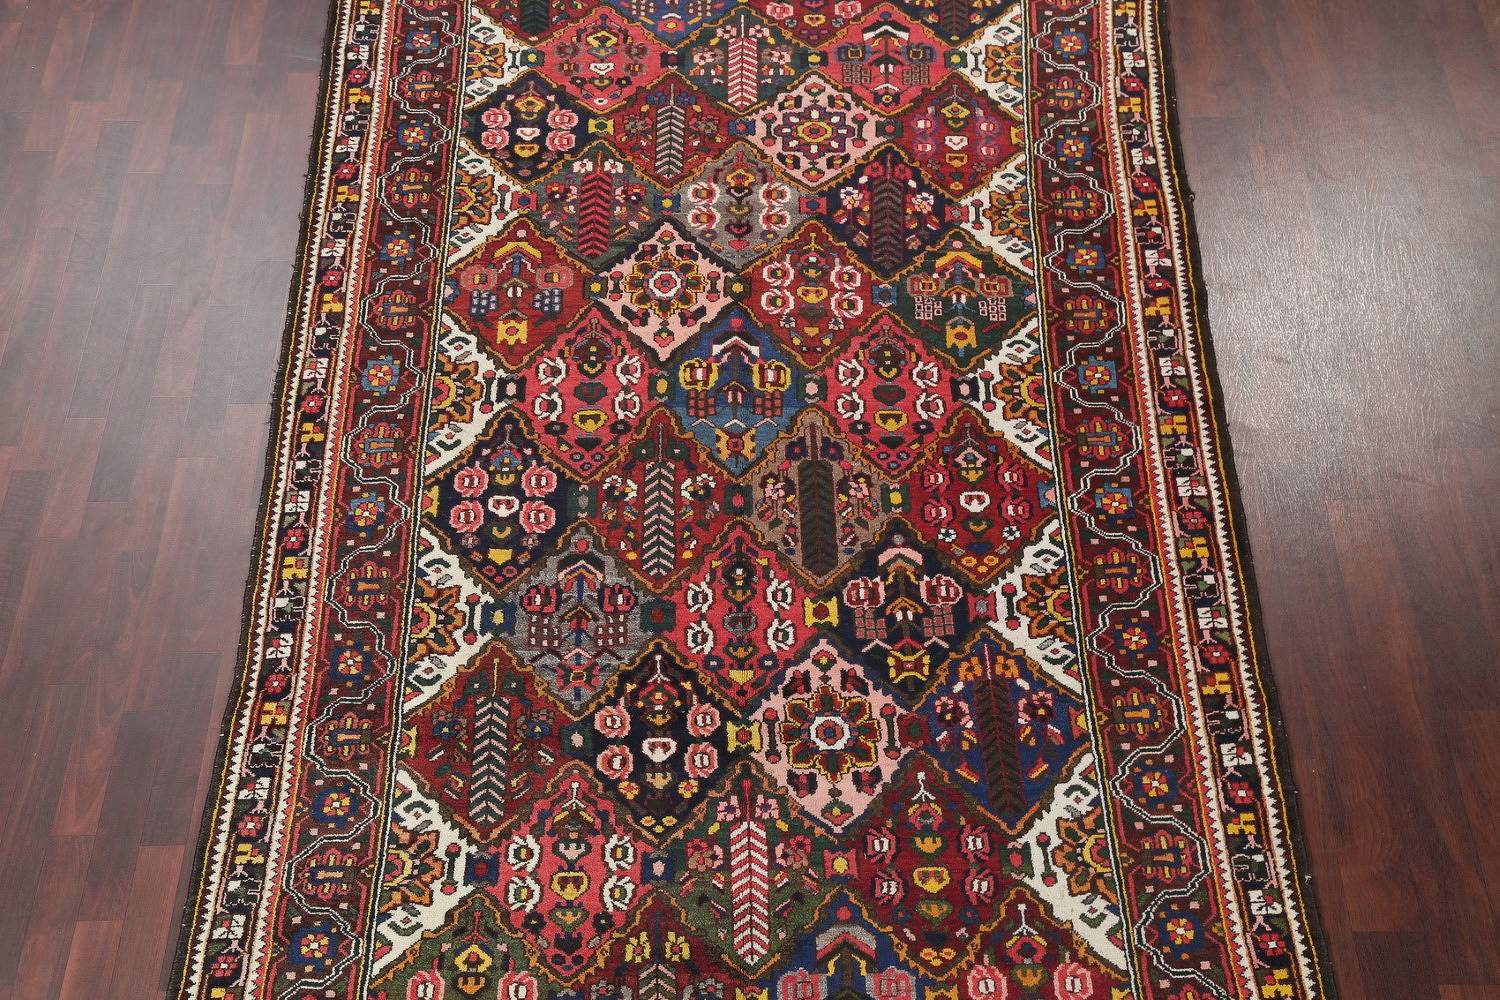 Antique Vegetable Dye Bakhtiari Persian Hand-Knotted Area Rug 7x12 image 3